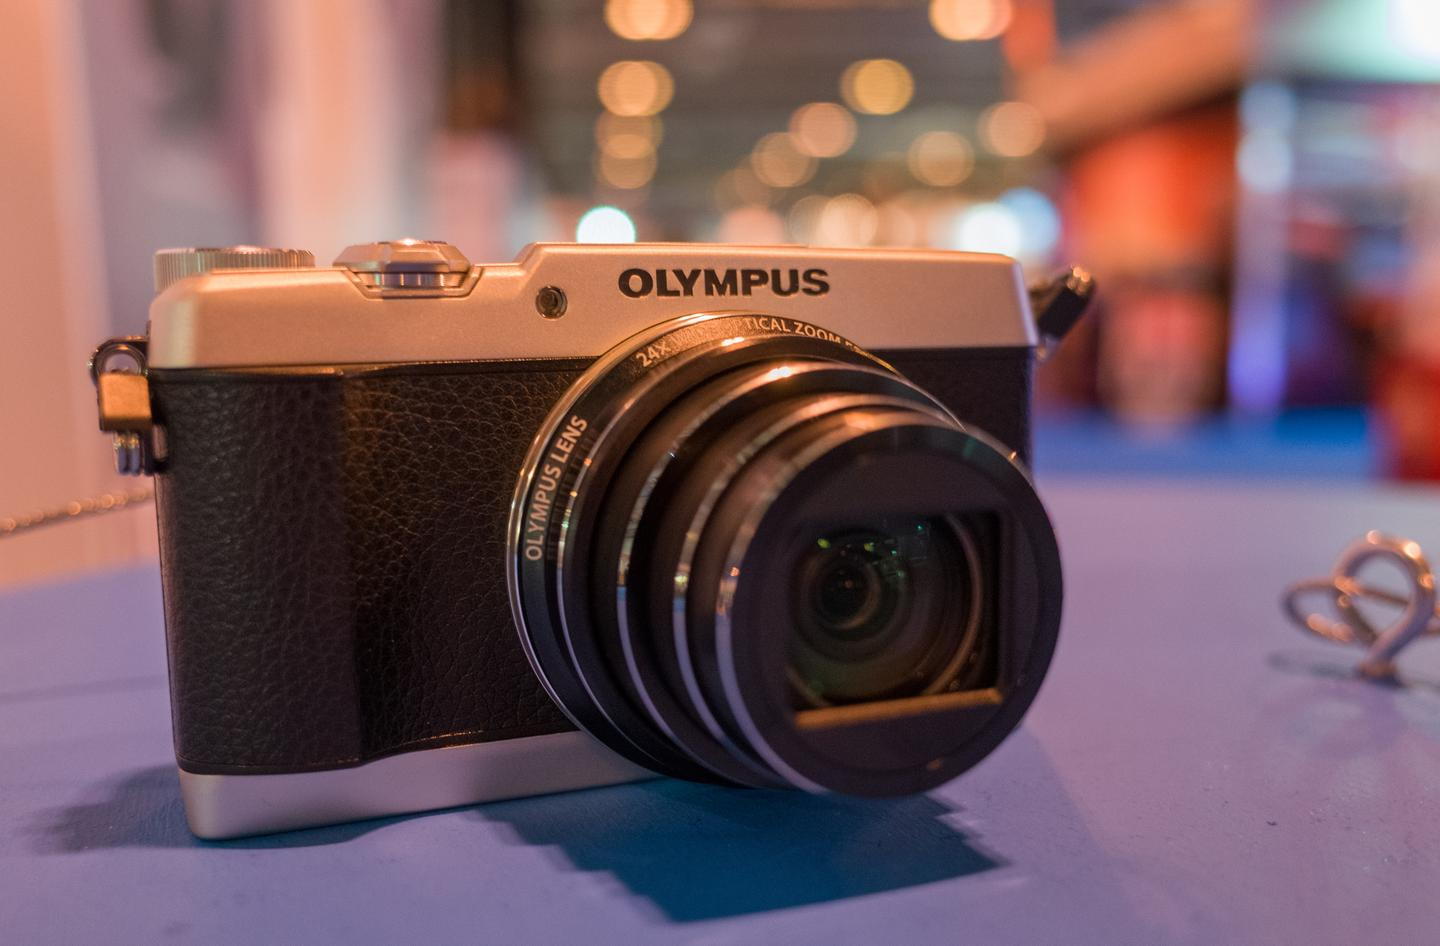 Gizmag goes hands-on with the soon-to-be-released Olympus Stylus SH-1